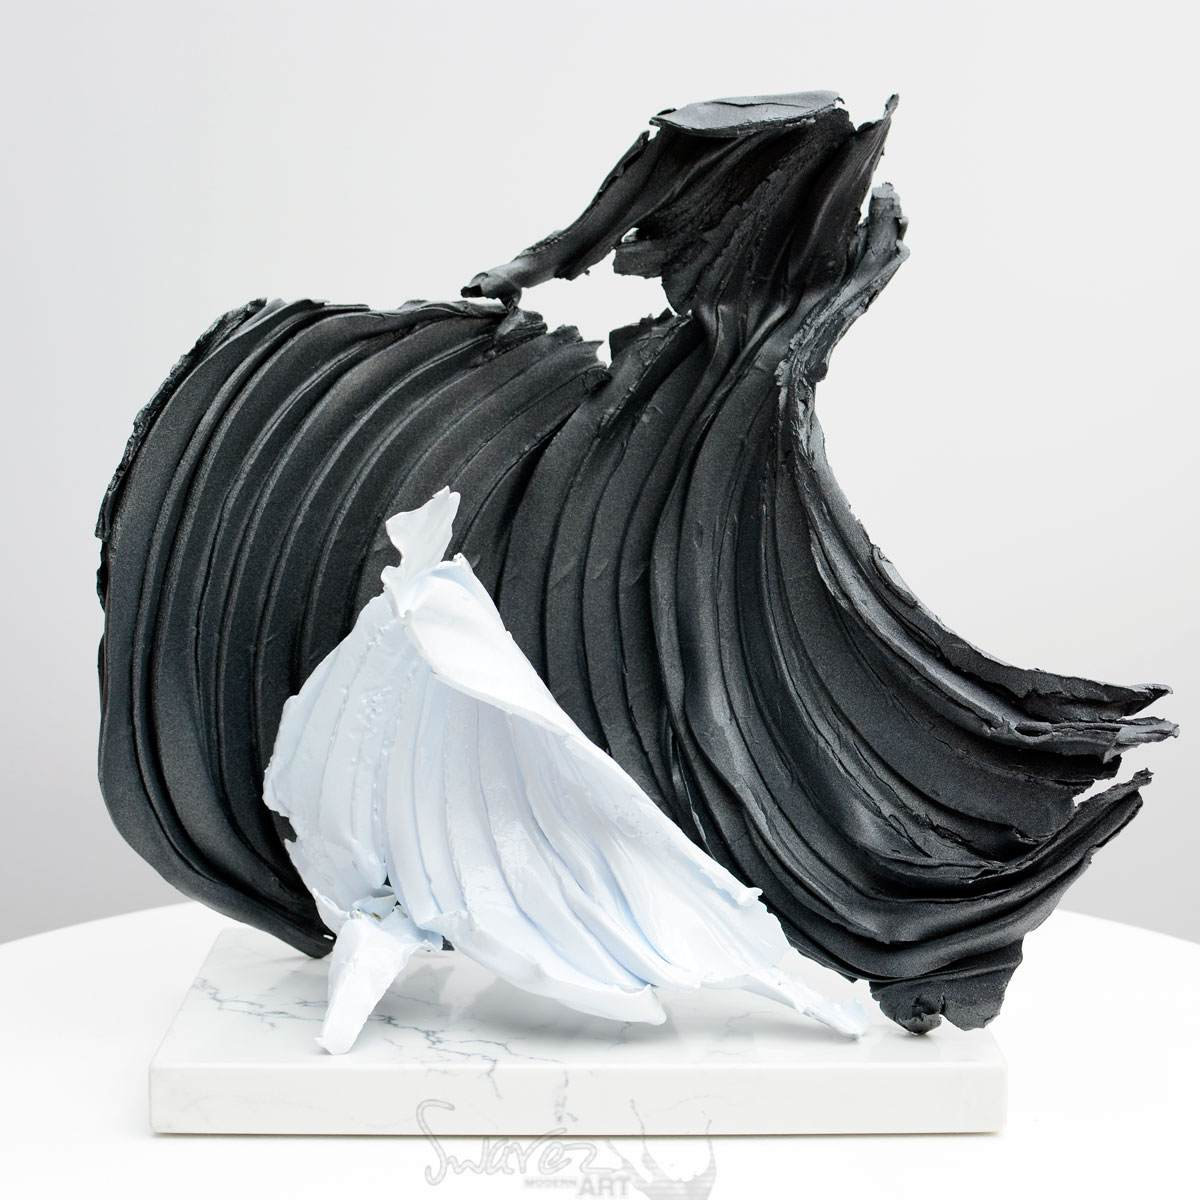 Grey and white metal sculpture on a white base